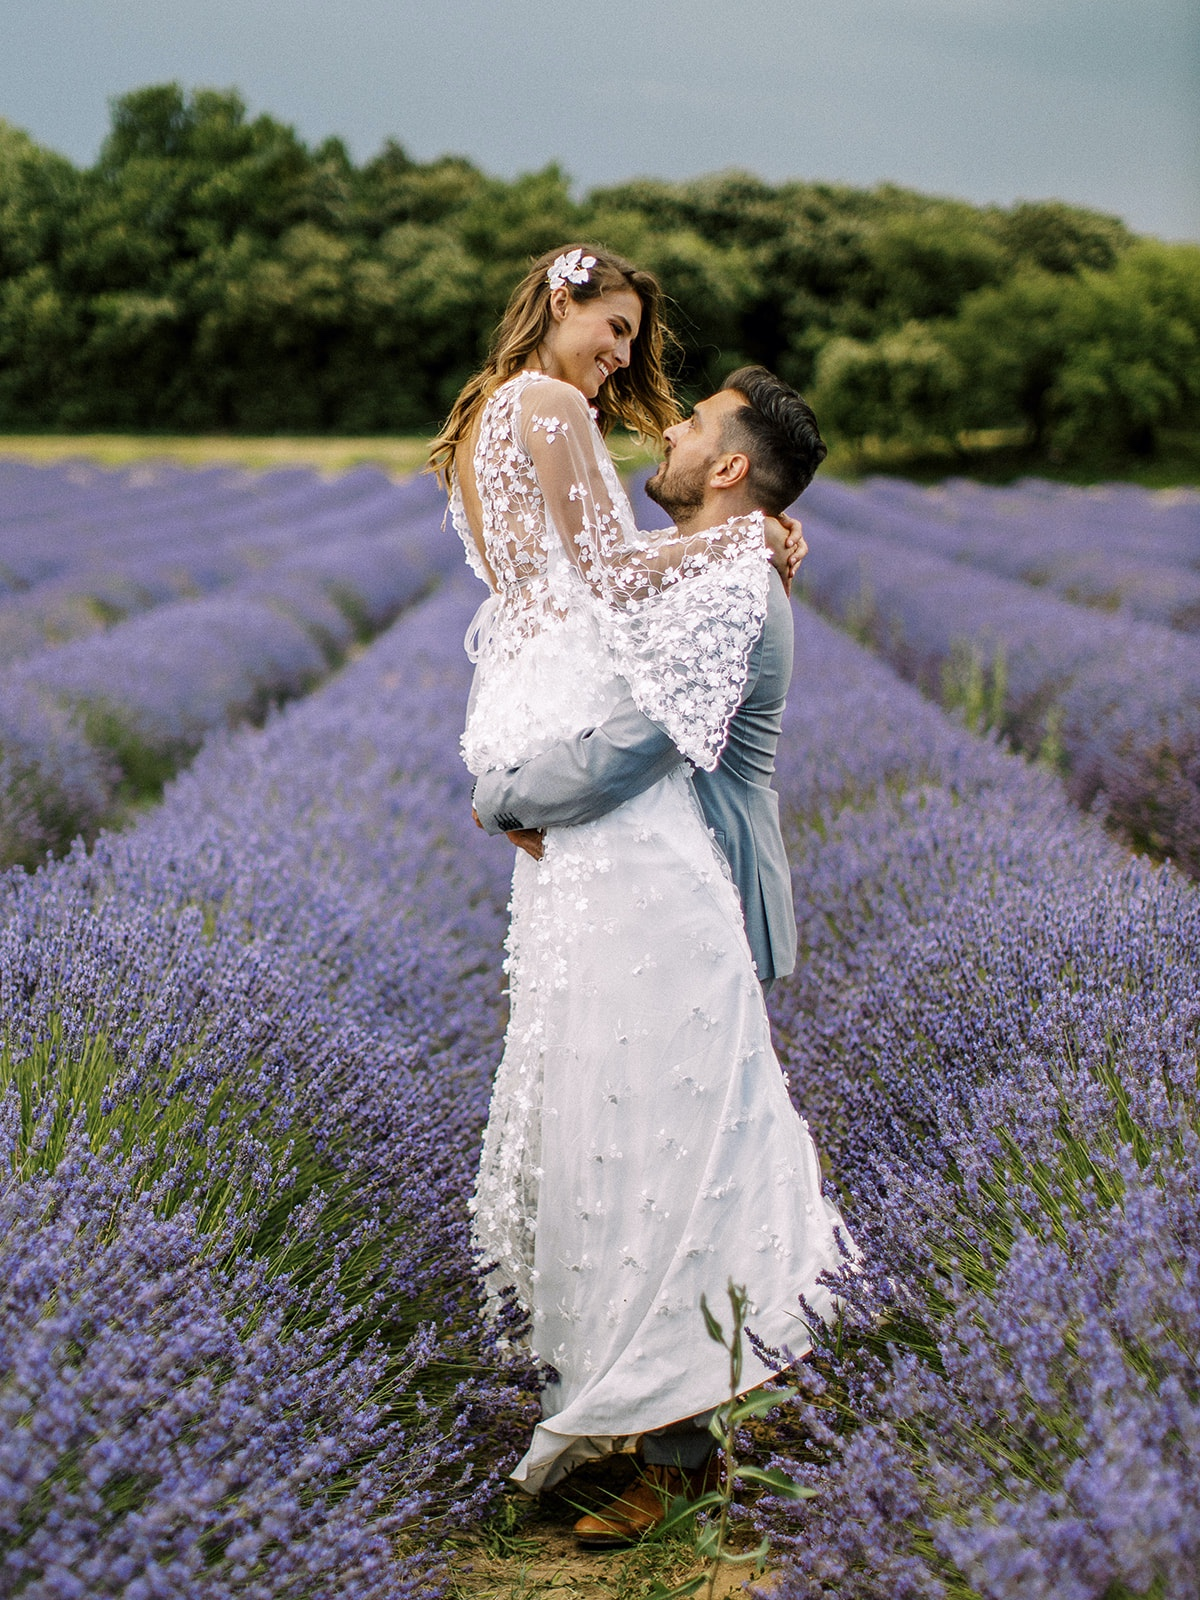 A Magical and Romantic Elopement in the Lavender Fields of Drôme Provençale